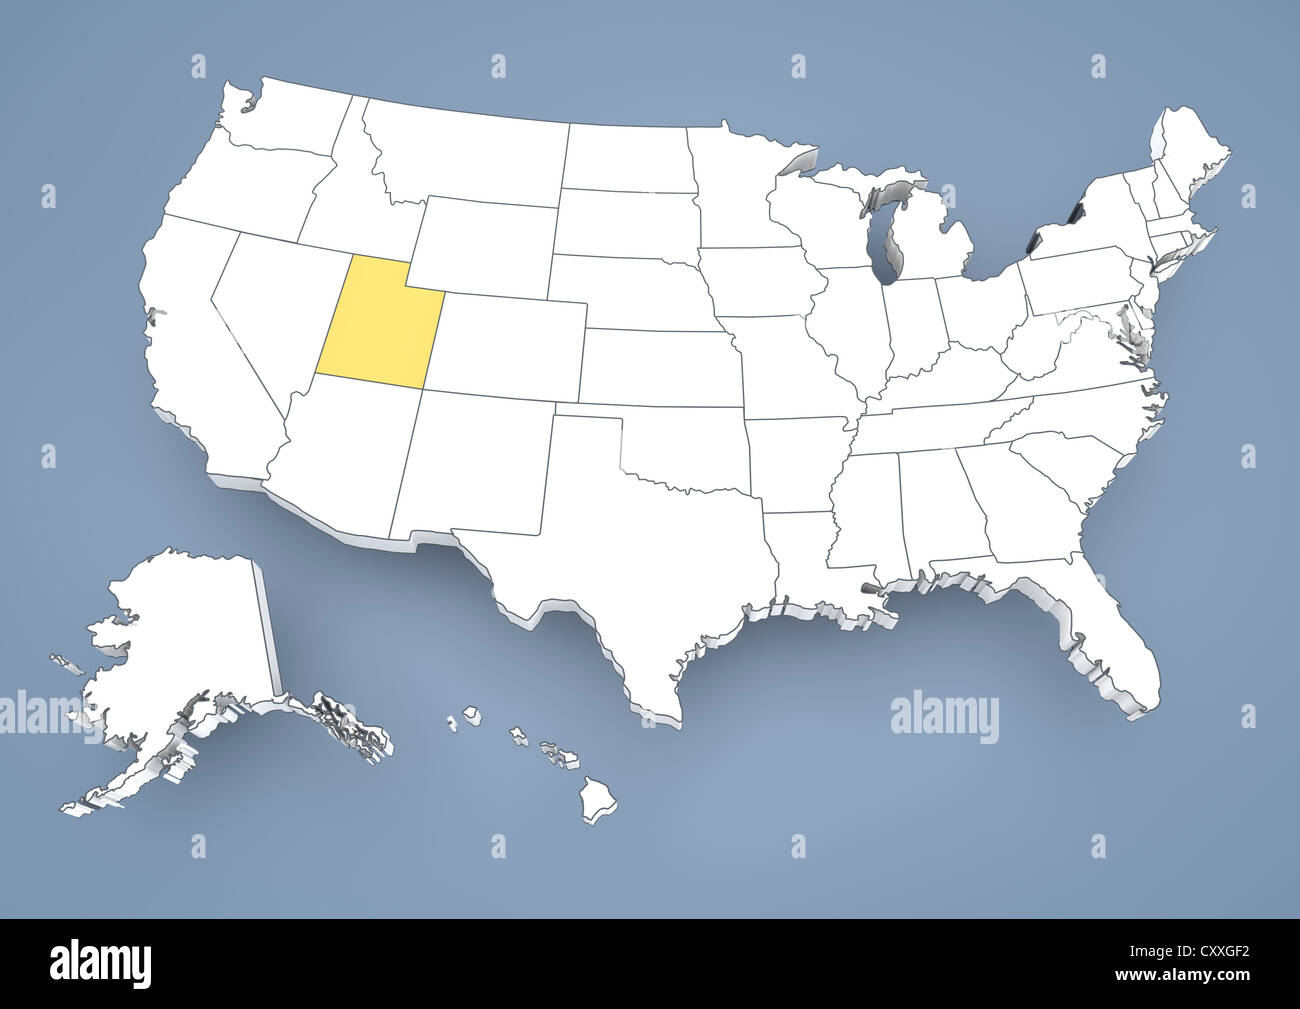 Utah UT highlighted on a contour map of USA United States of